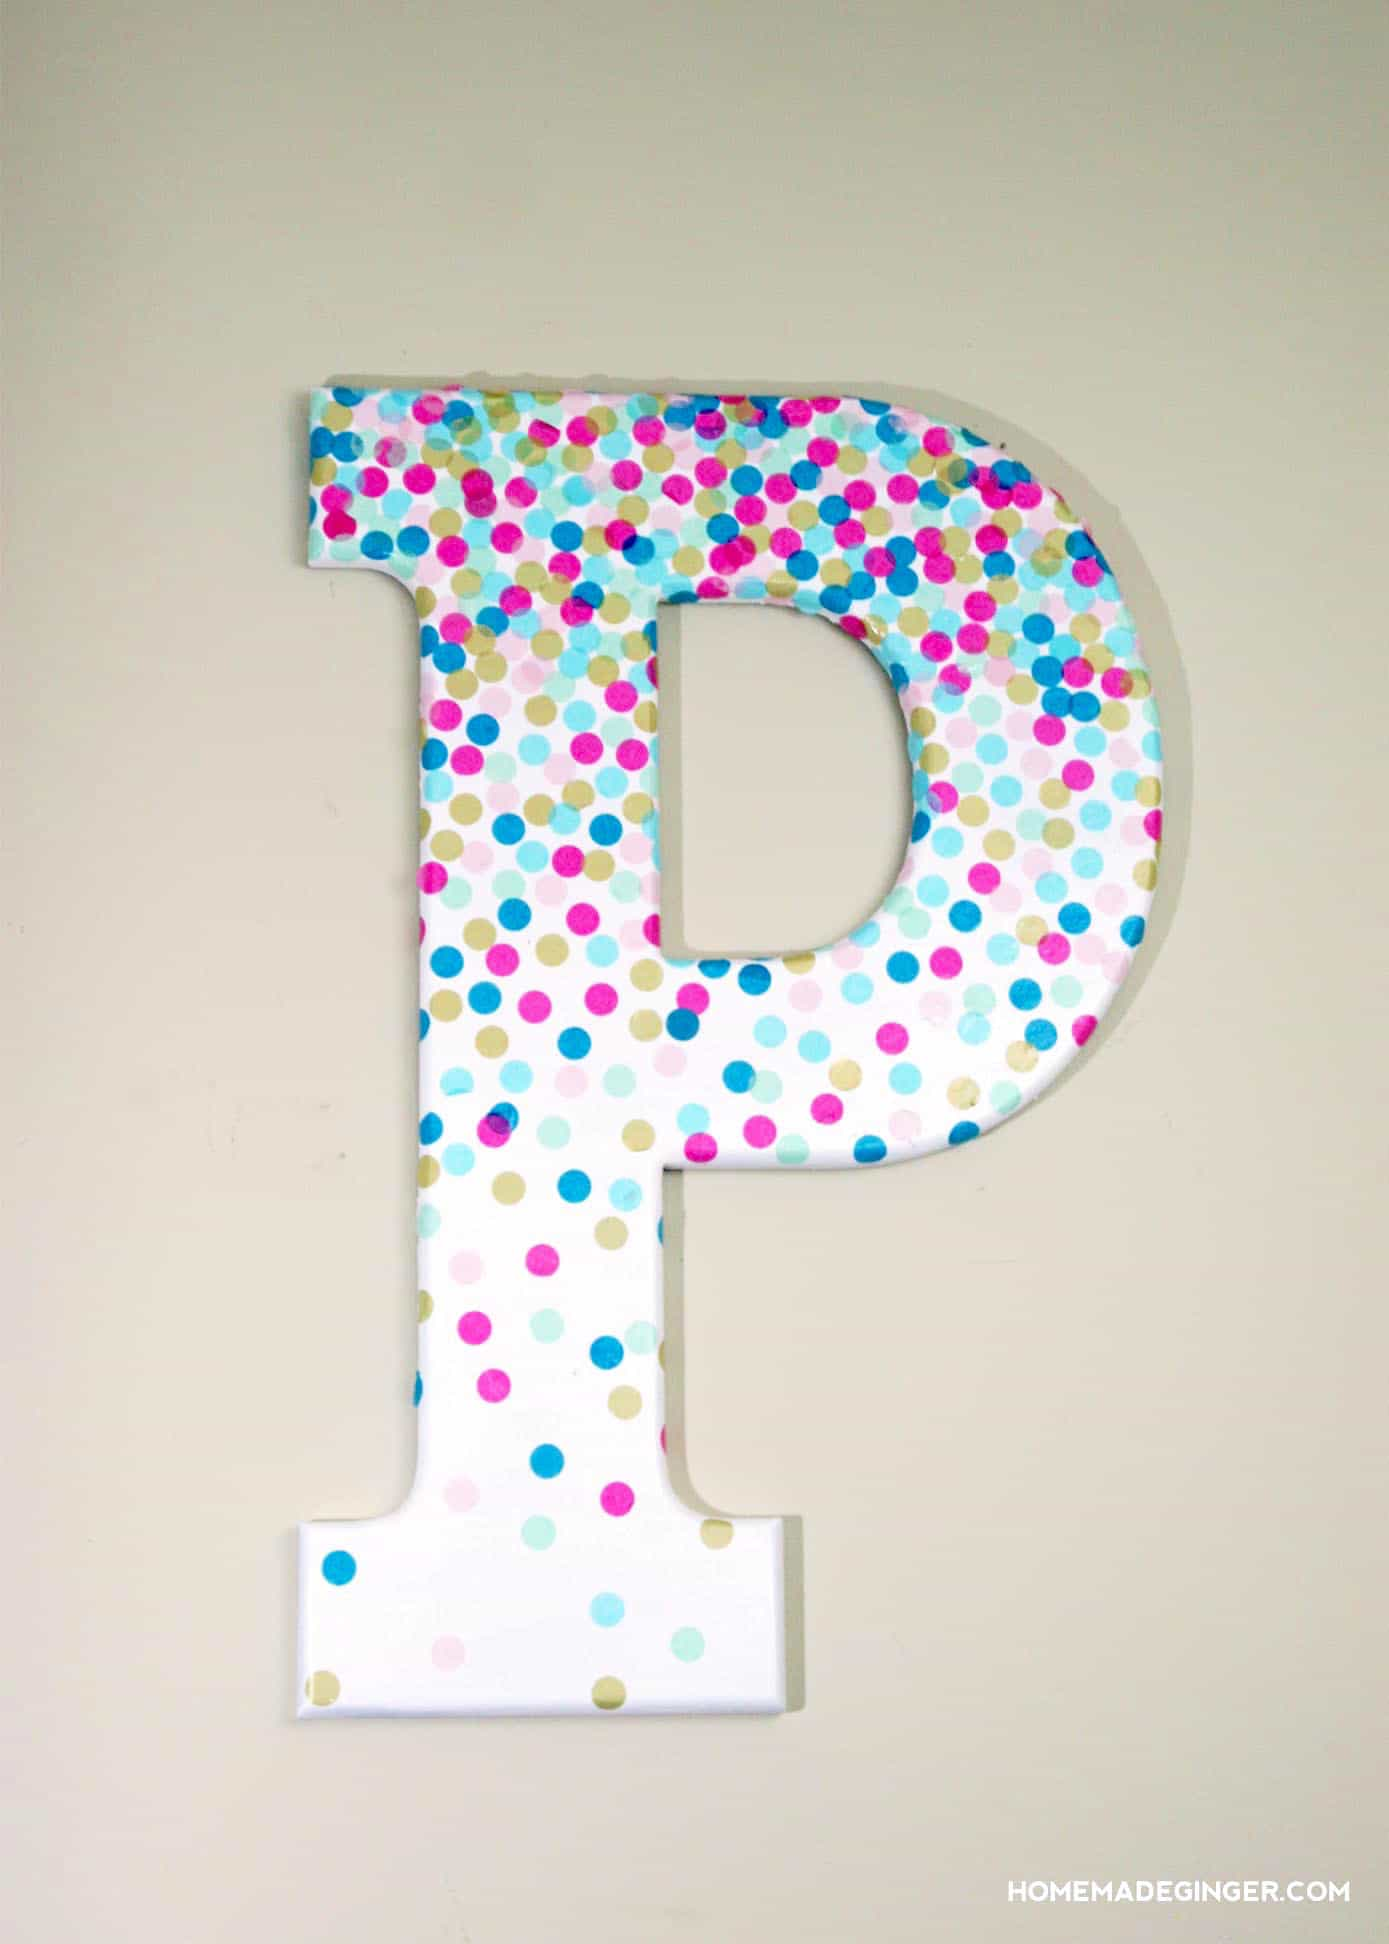 Cute Wallpapers First Initial Letter A Confetti Decorative Letters For Wall Decor Mod Podge Rocks